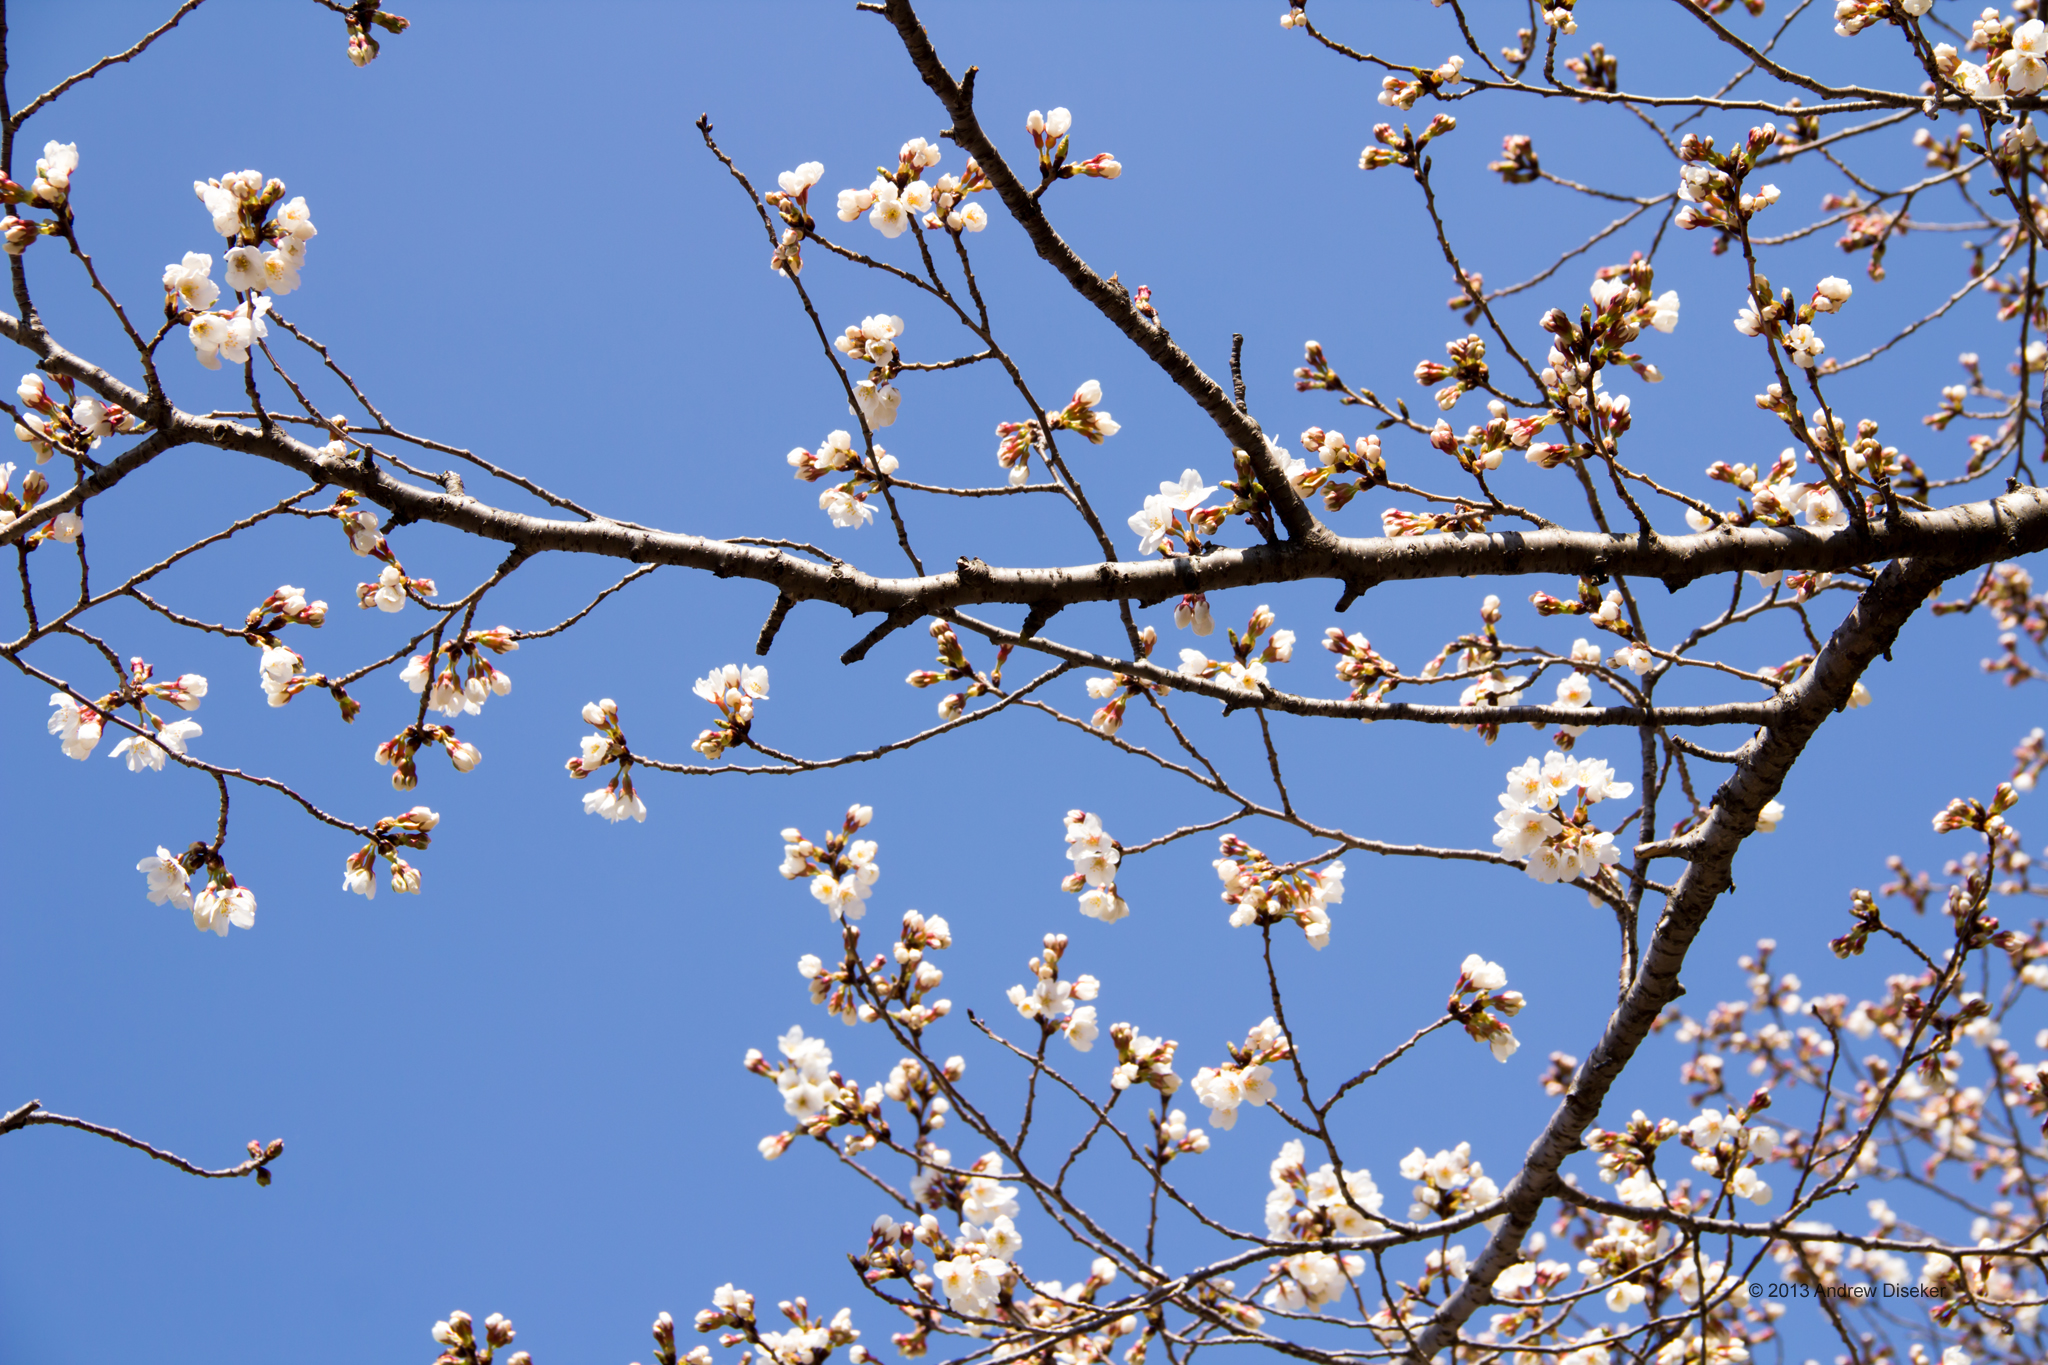 Cherry blossoms and branches against cloudless blue sky